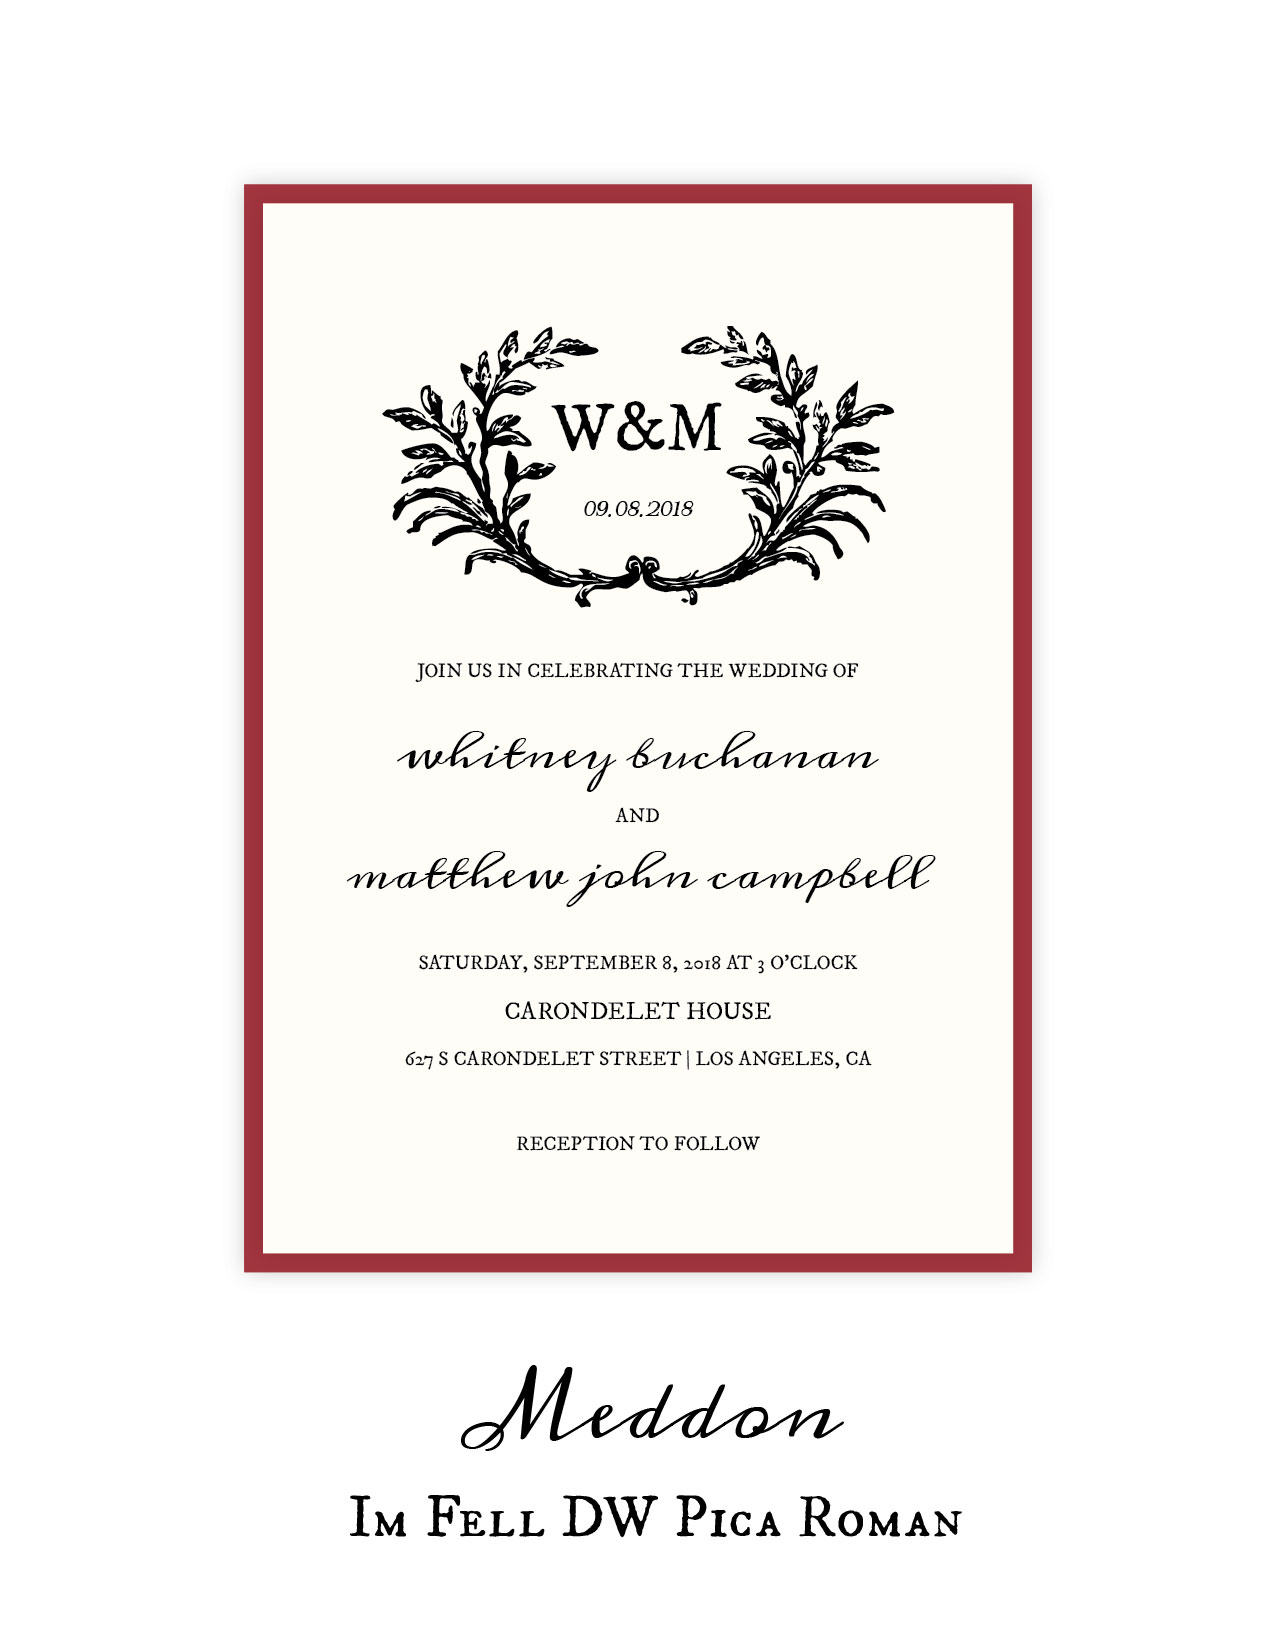 Wedding Fonts_3_Meddon.jpg